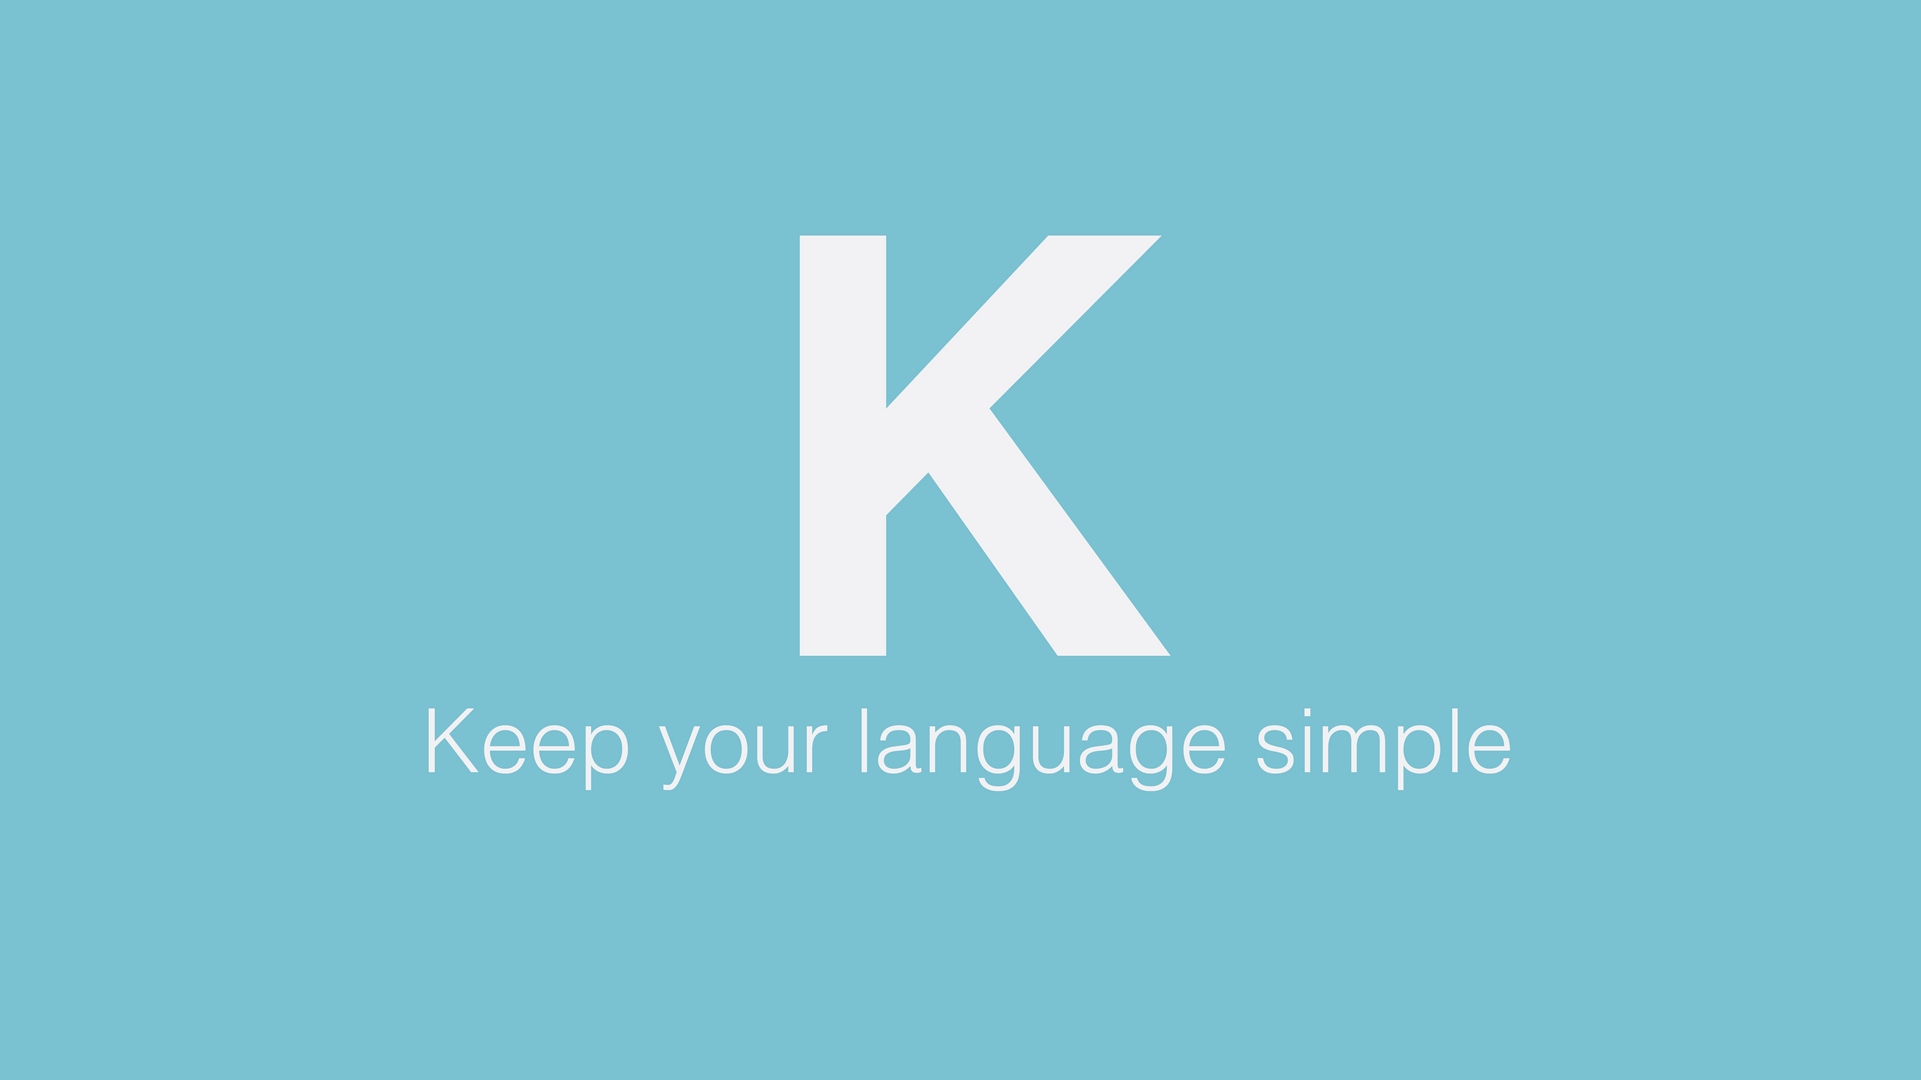 Keep your language simple